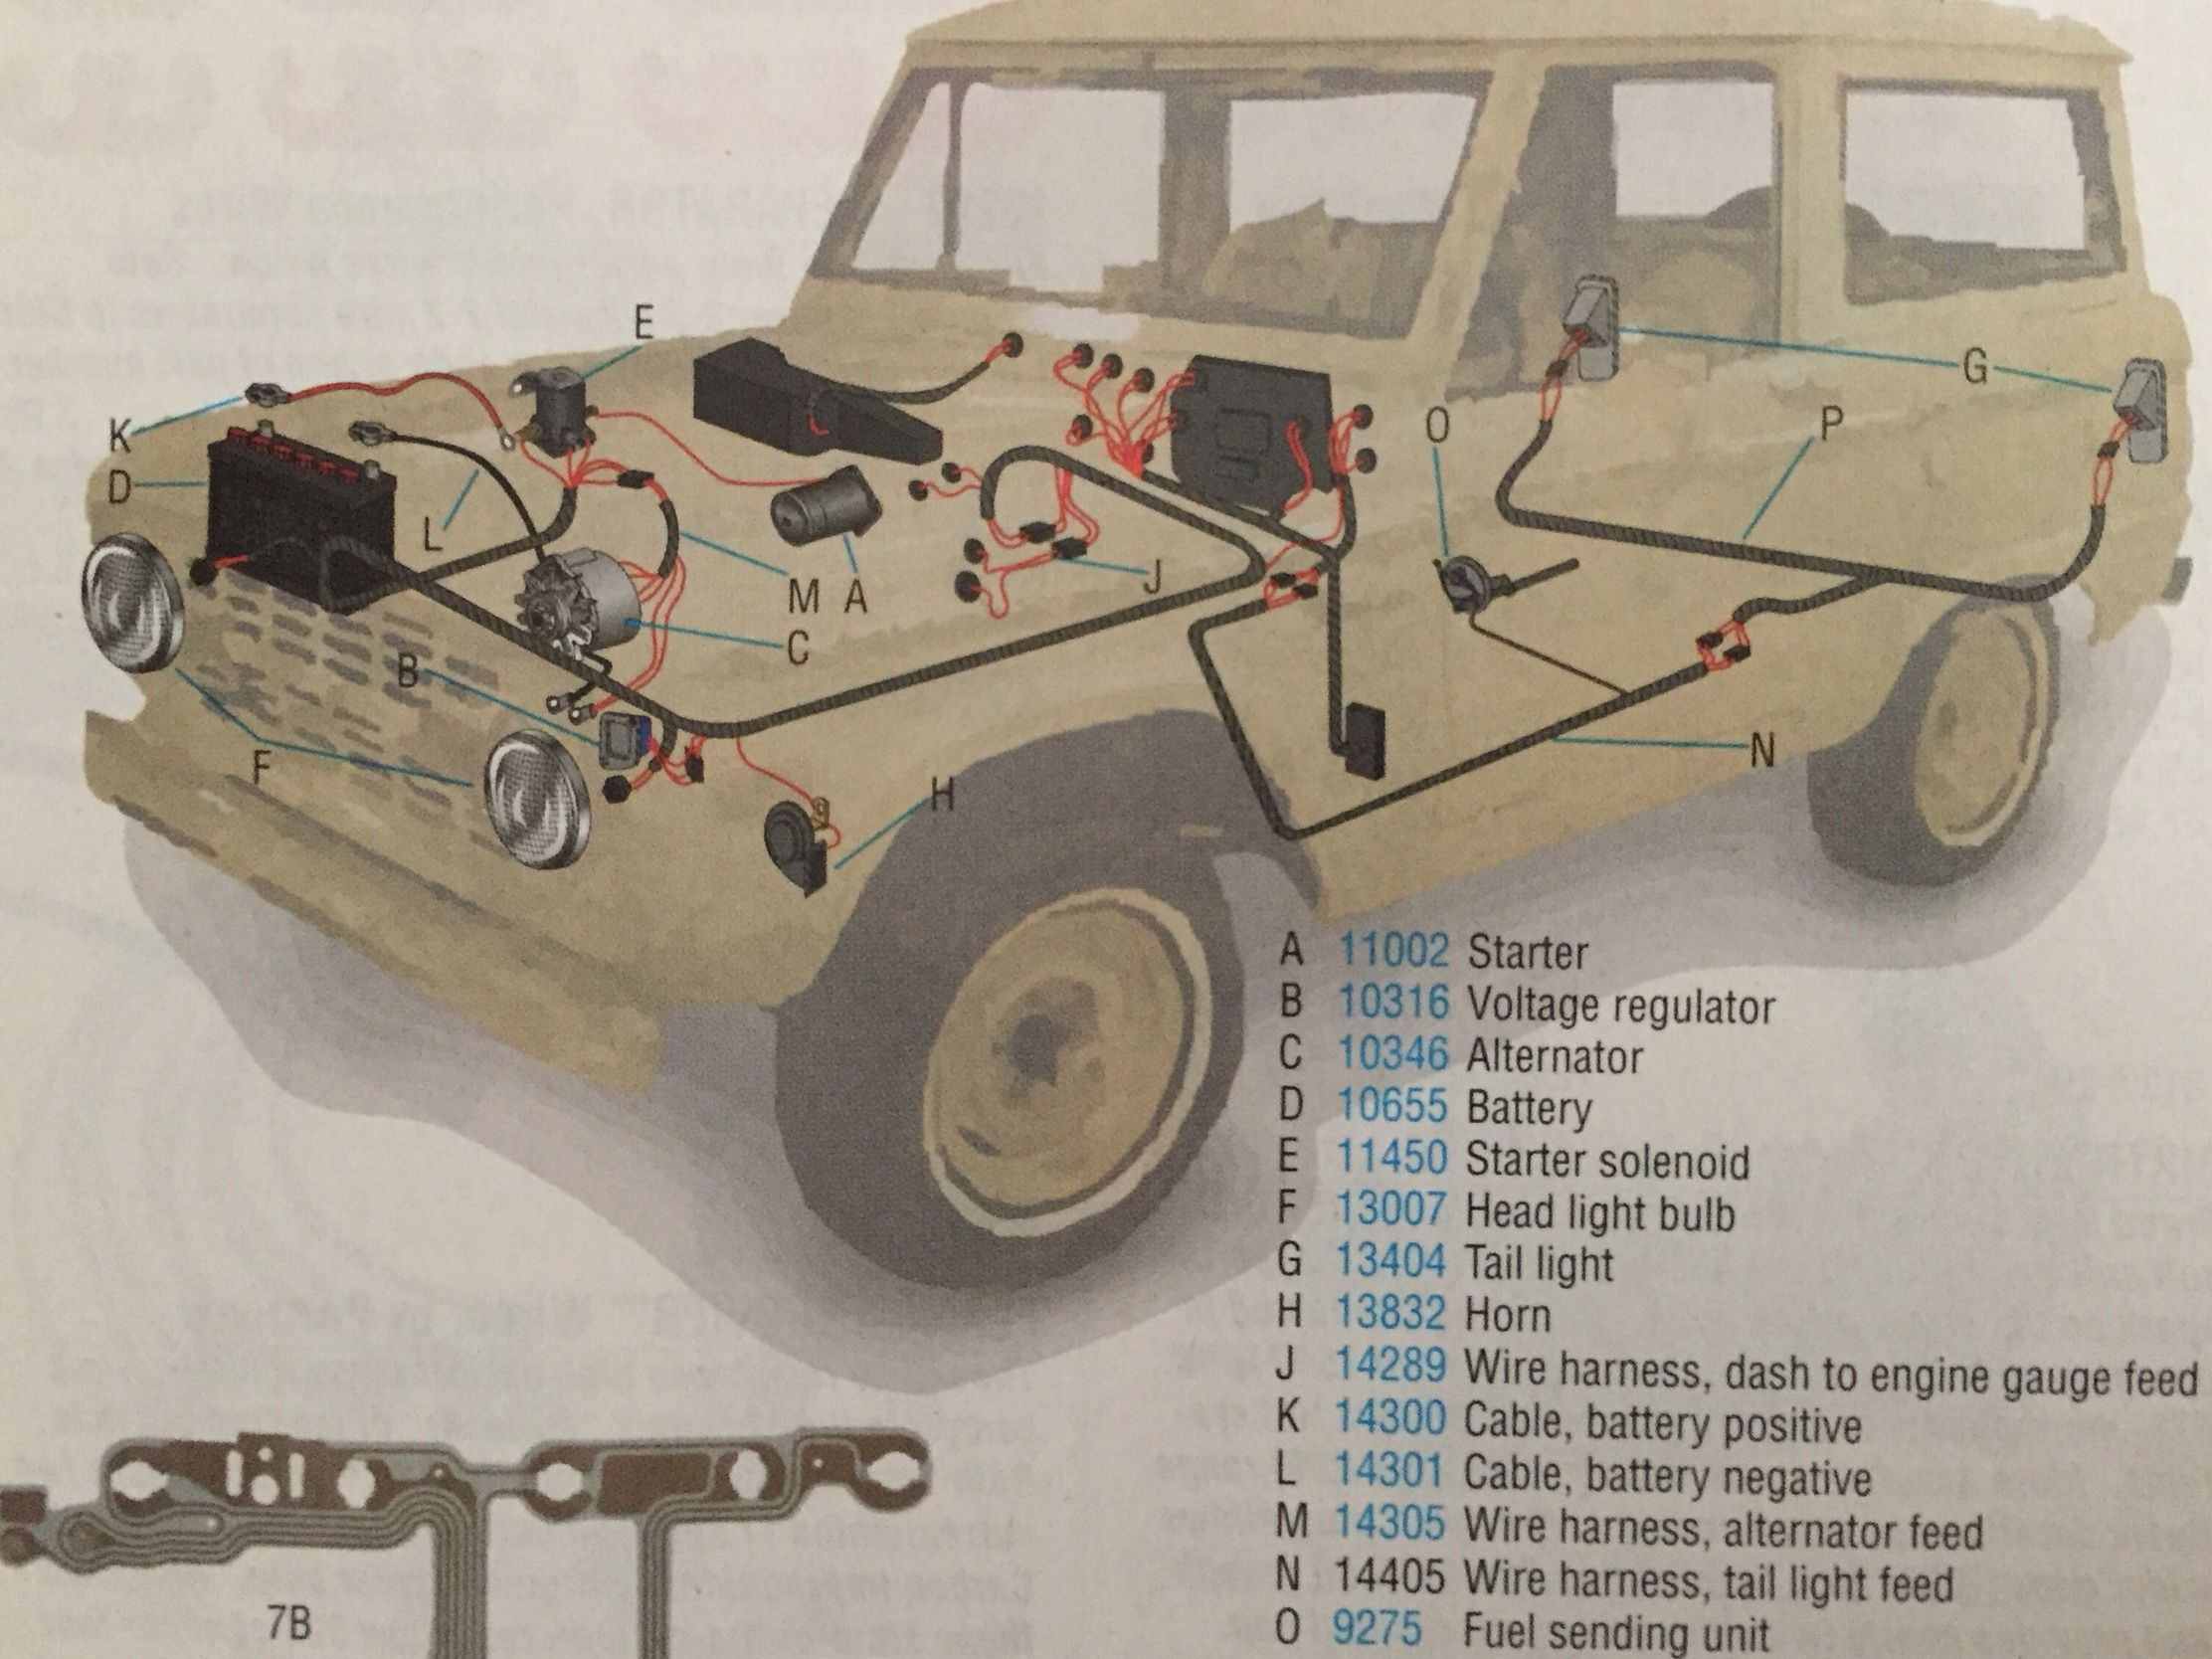 Ford Bronco Electrical System Chart | Ford bronco, Early bronco, Classic  broncoPinterest